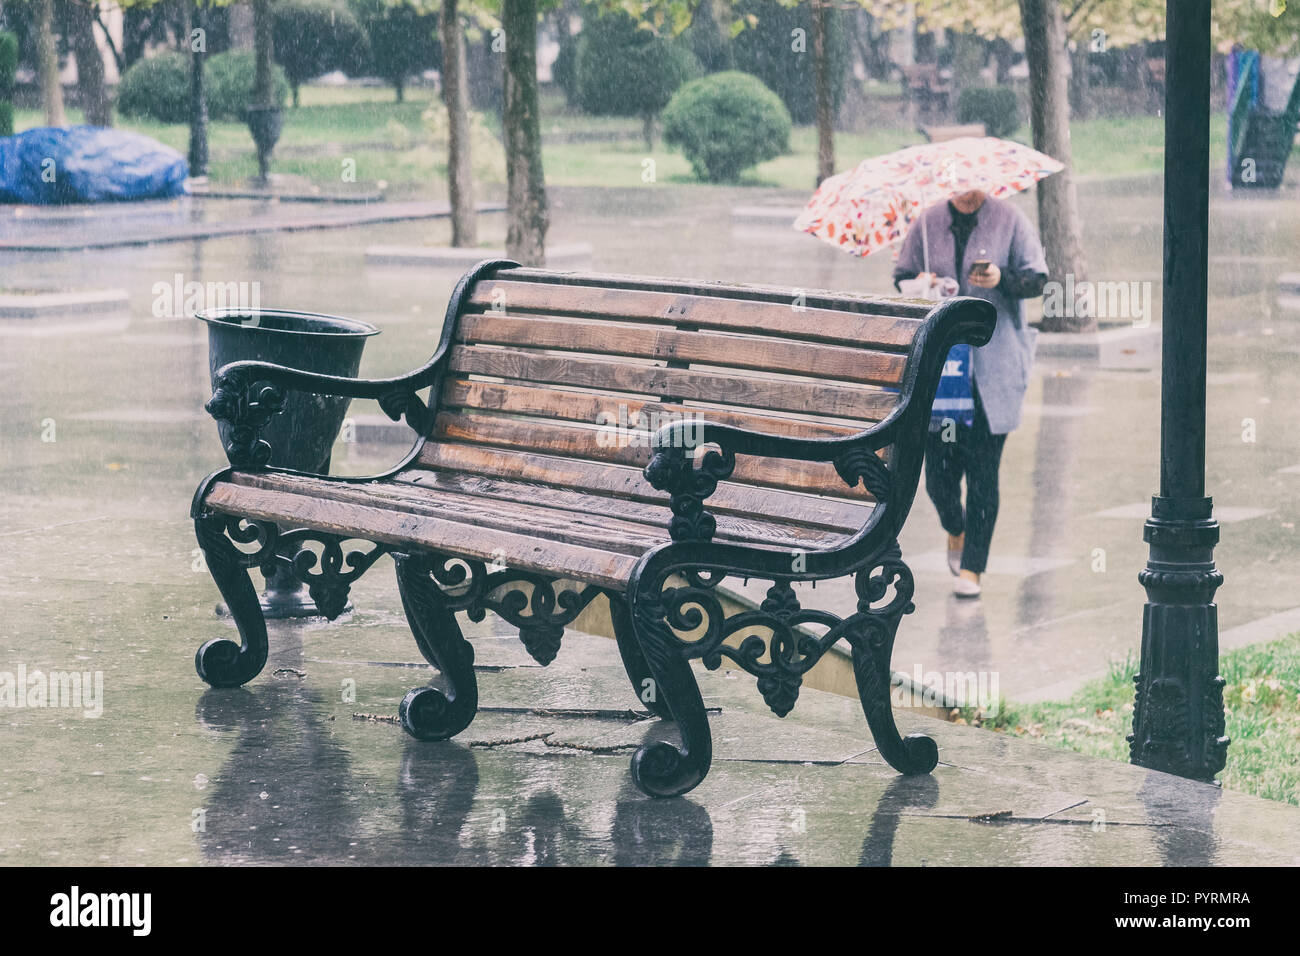 Wet bench under the rain in the city park - Stock Image